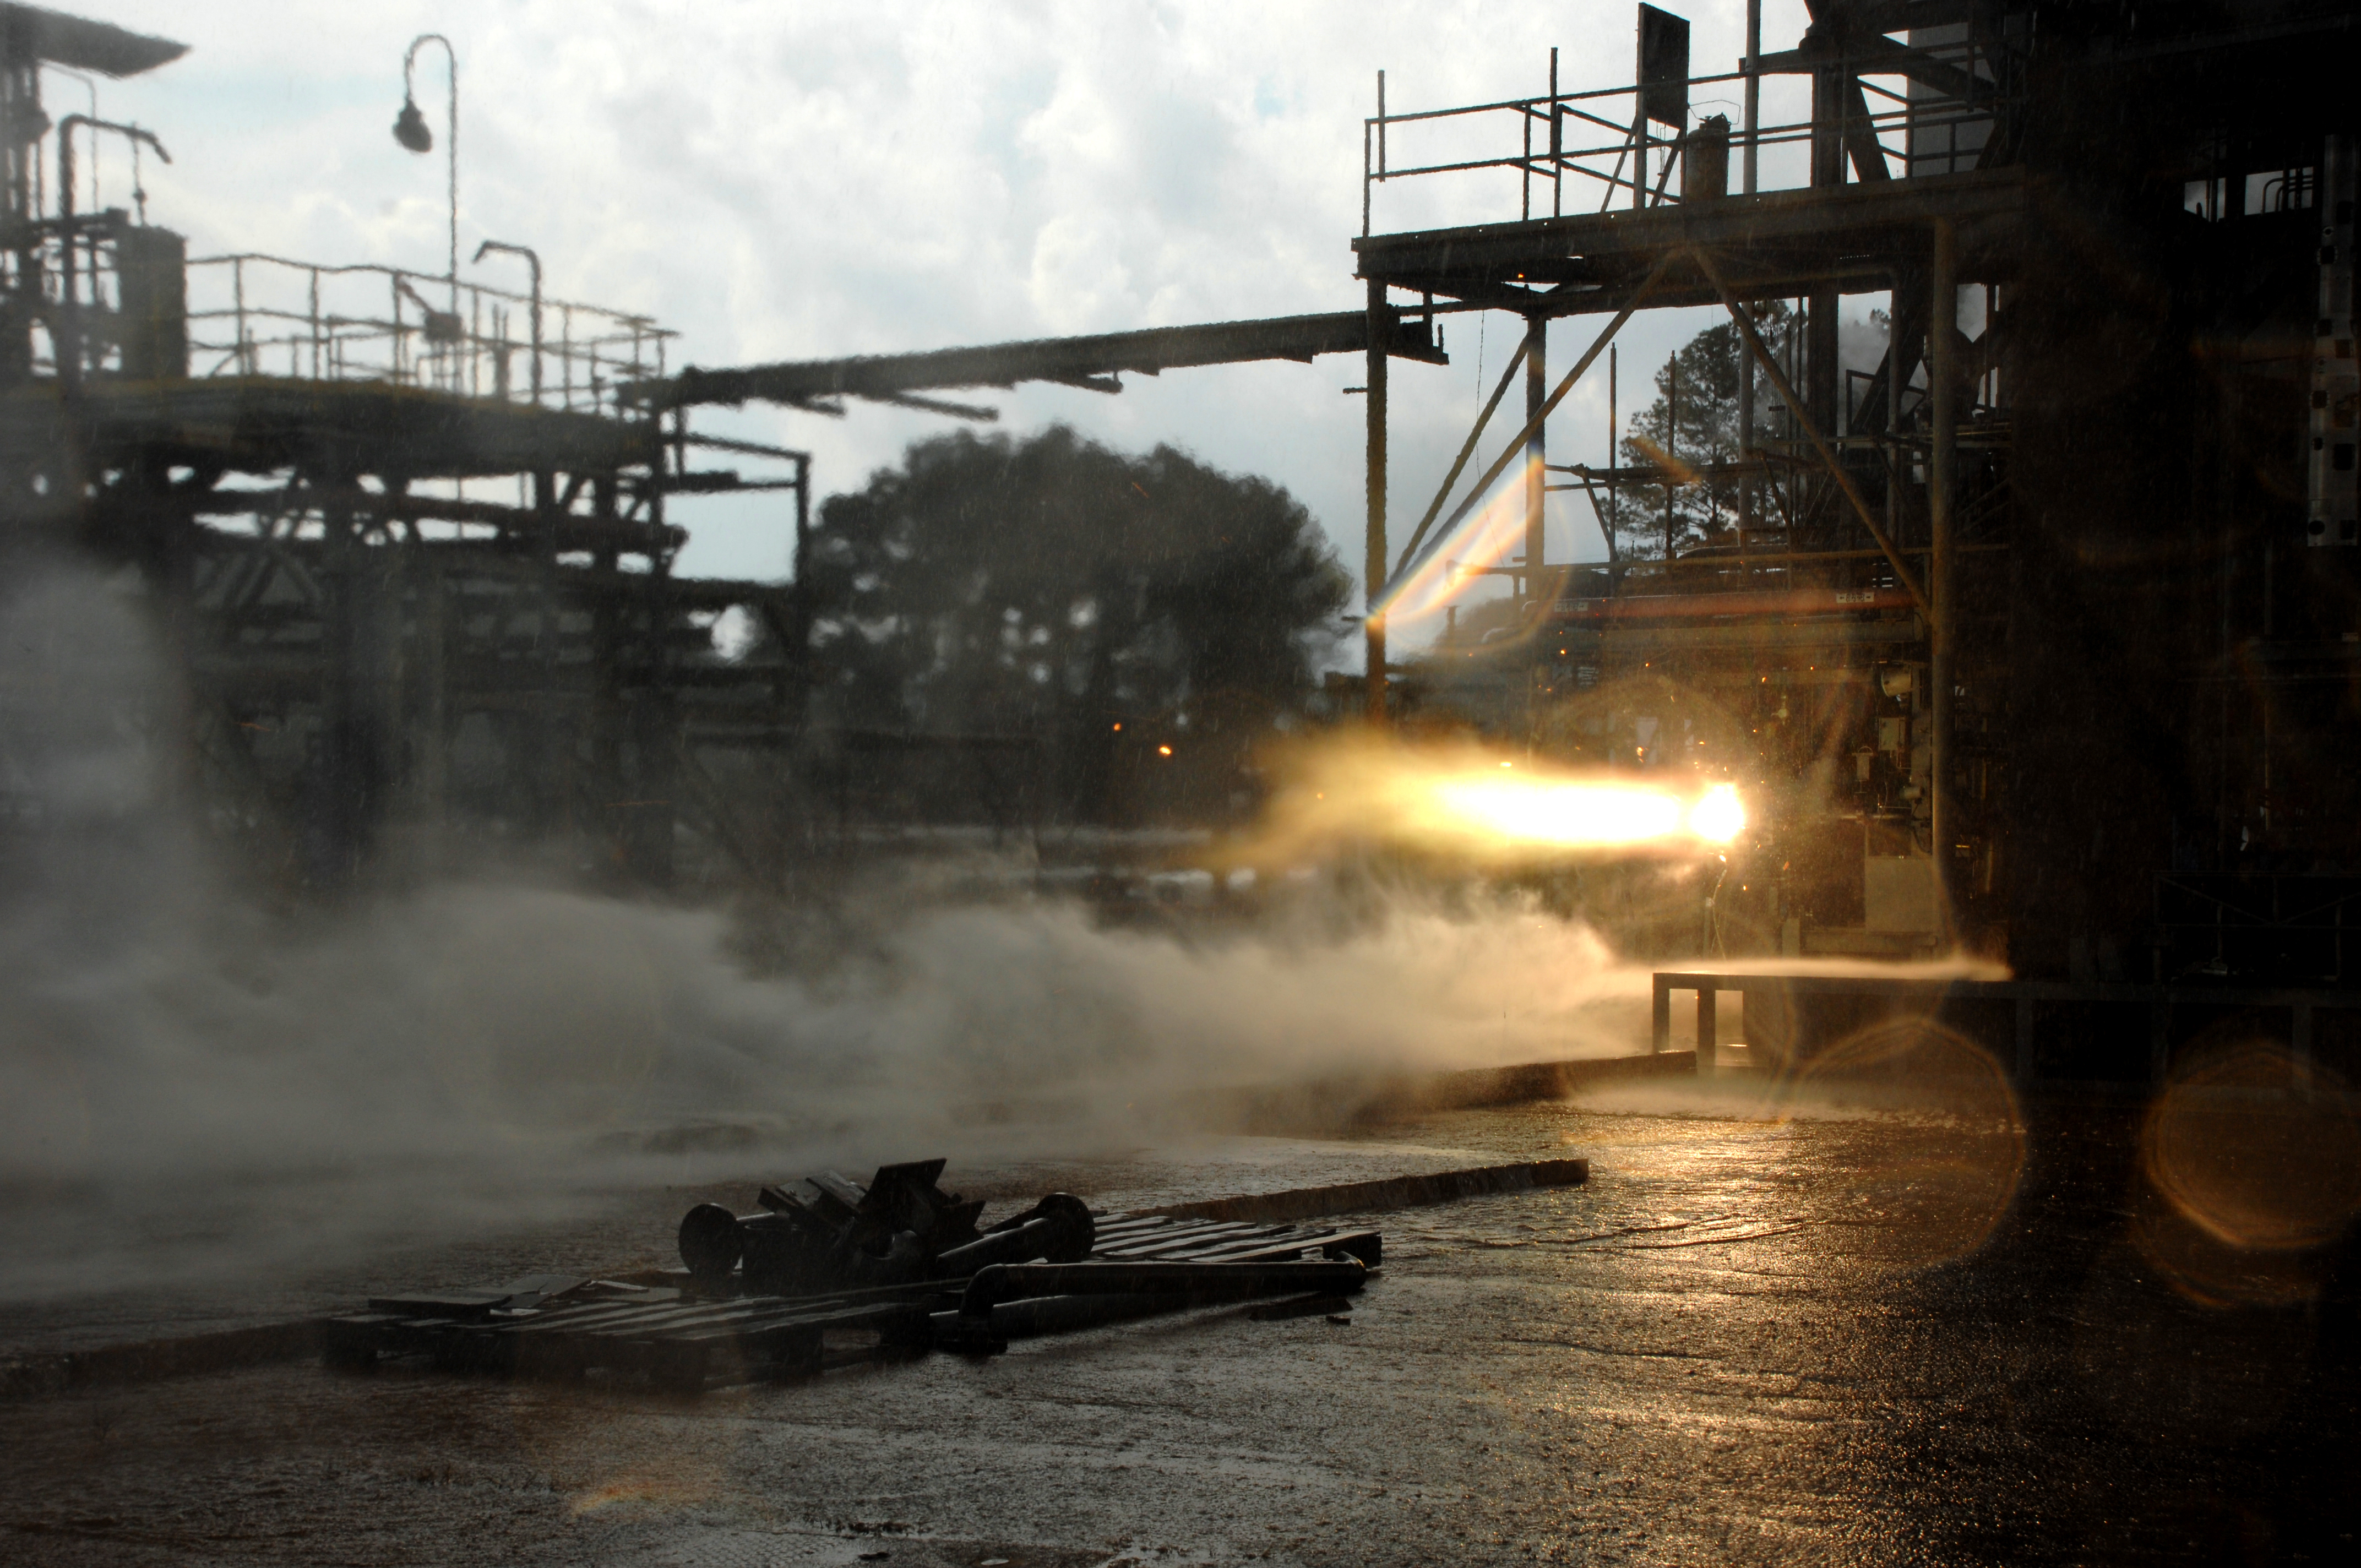 NASA test-fires 3D printed rocket parts: low cost, high power innovation | Ars Technica